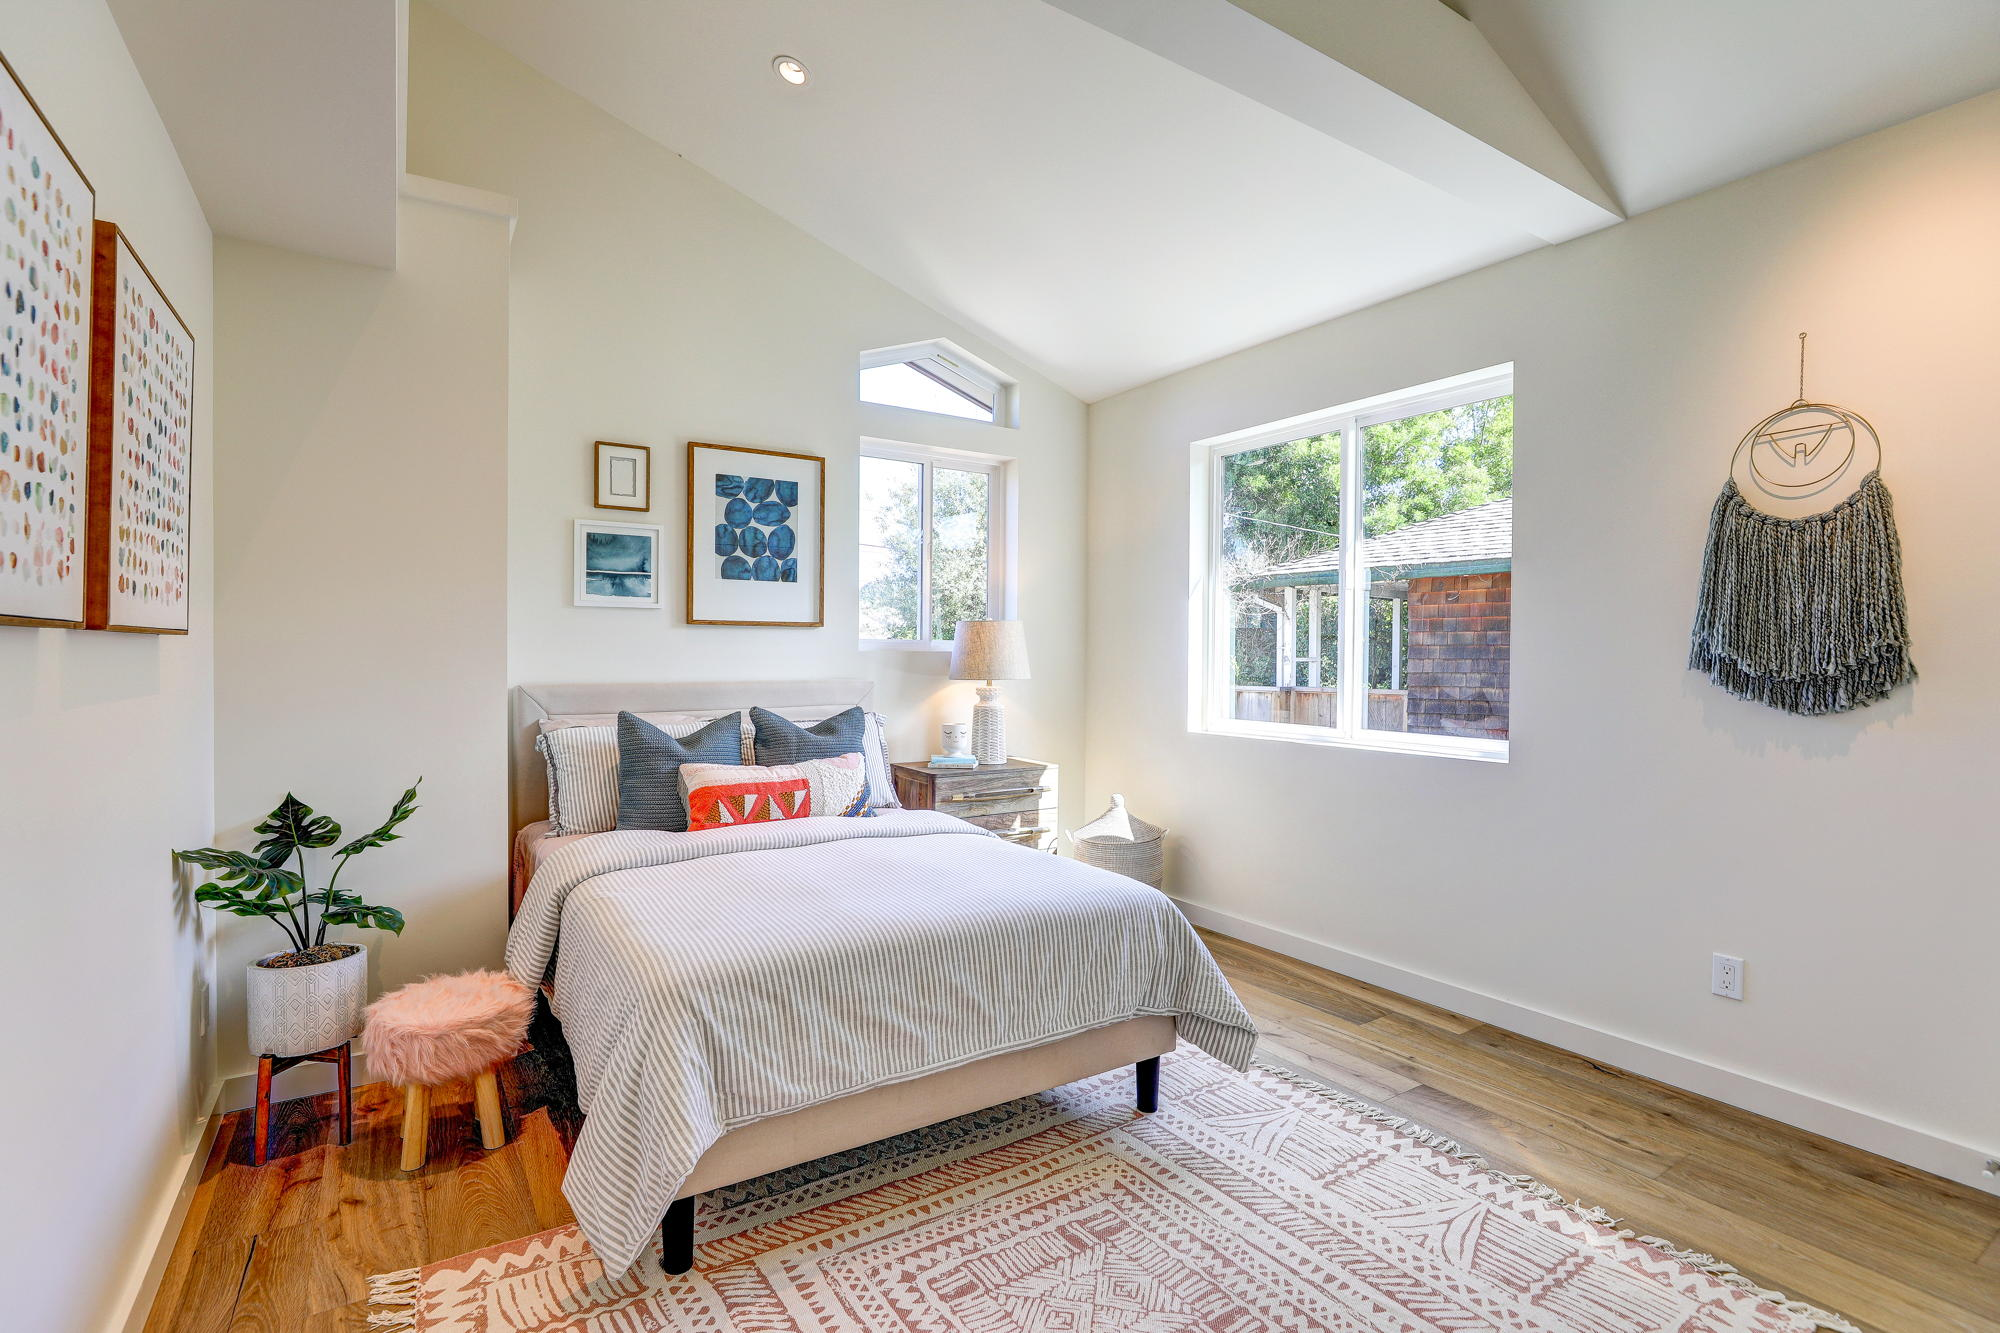 38 Ryan Avenue, Mill Valley - Sycamore Park Homes for sale - 37- Listed by Team Own Marin with Compass Real Estate.jpg